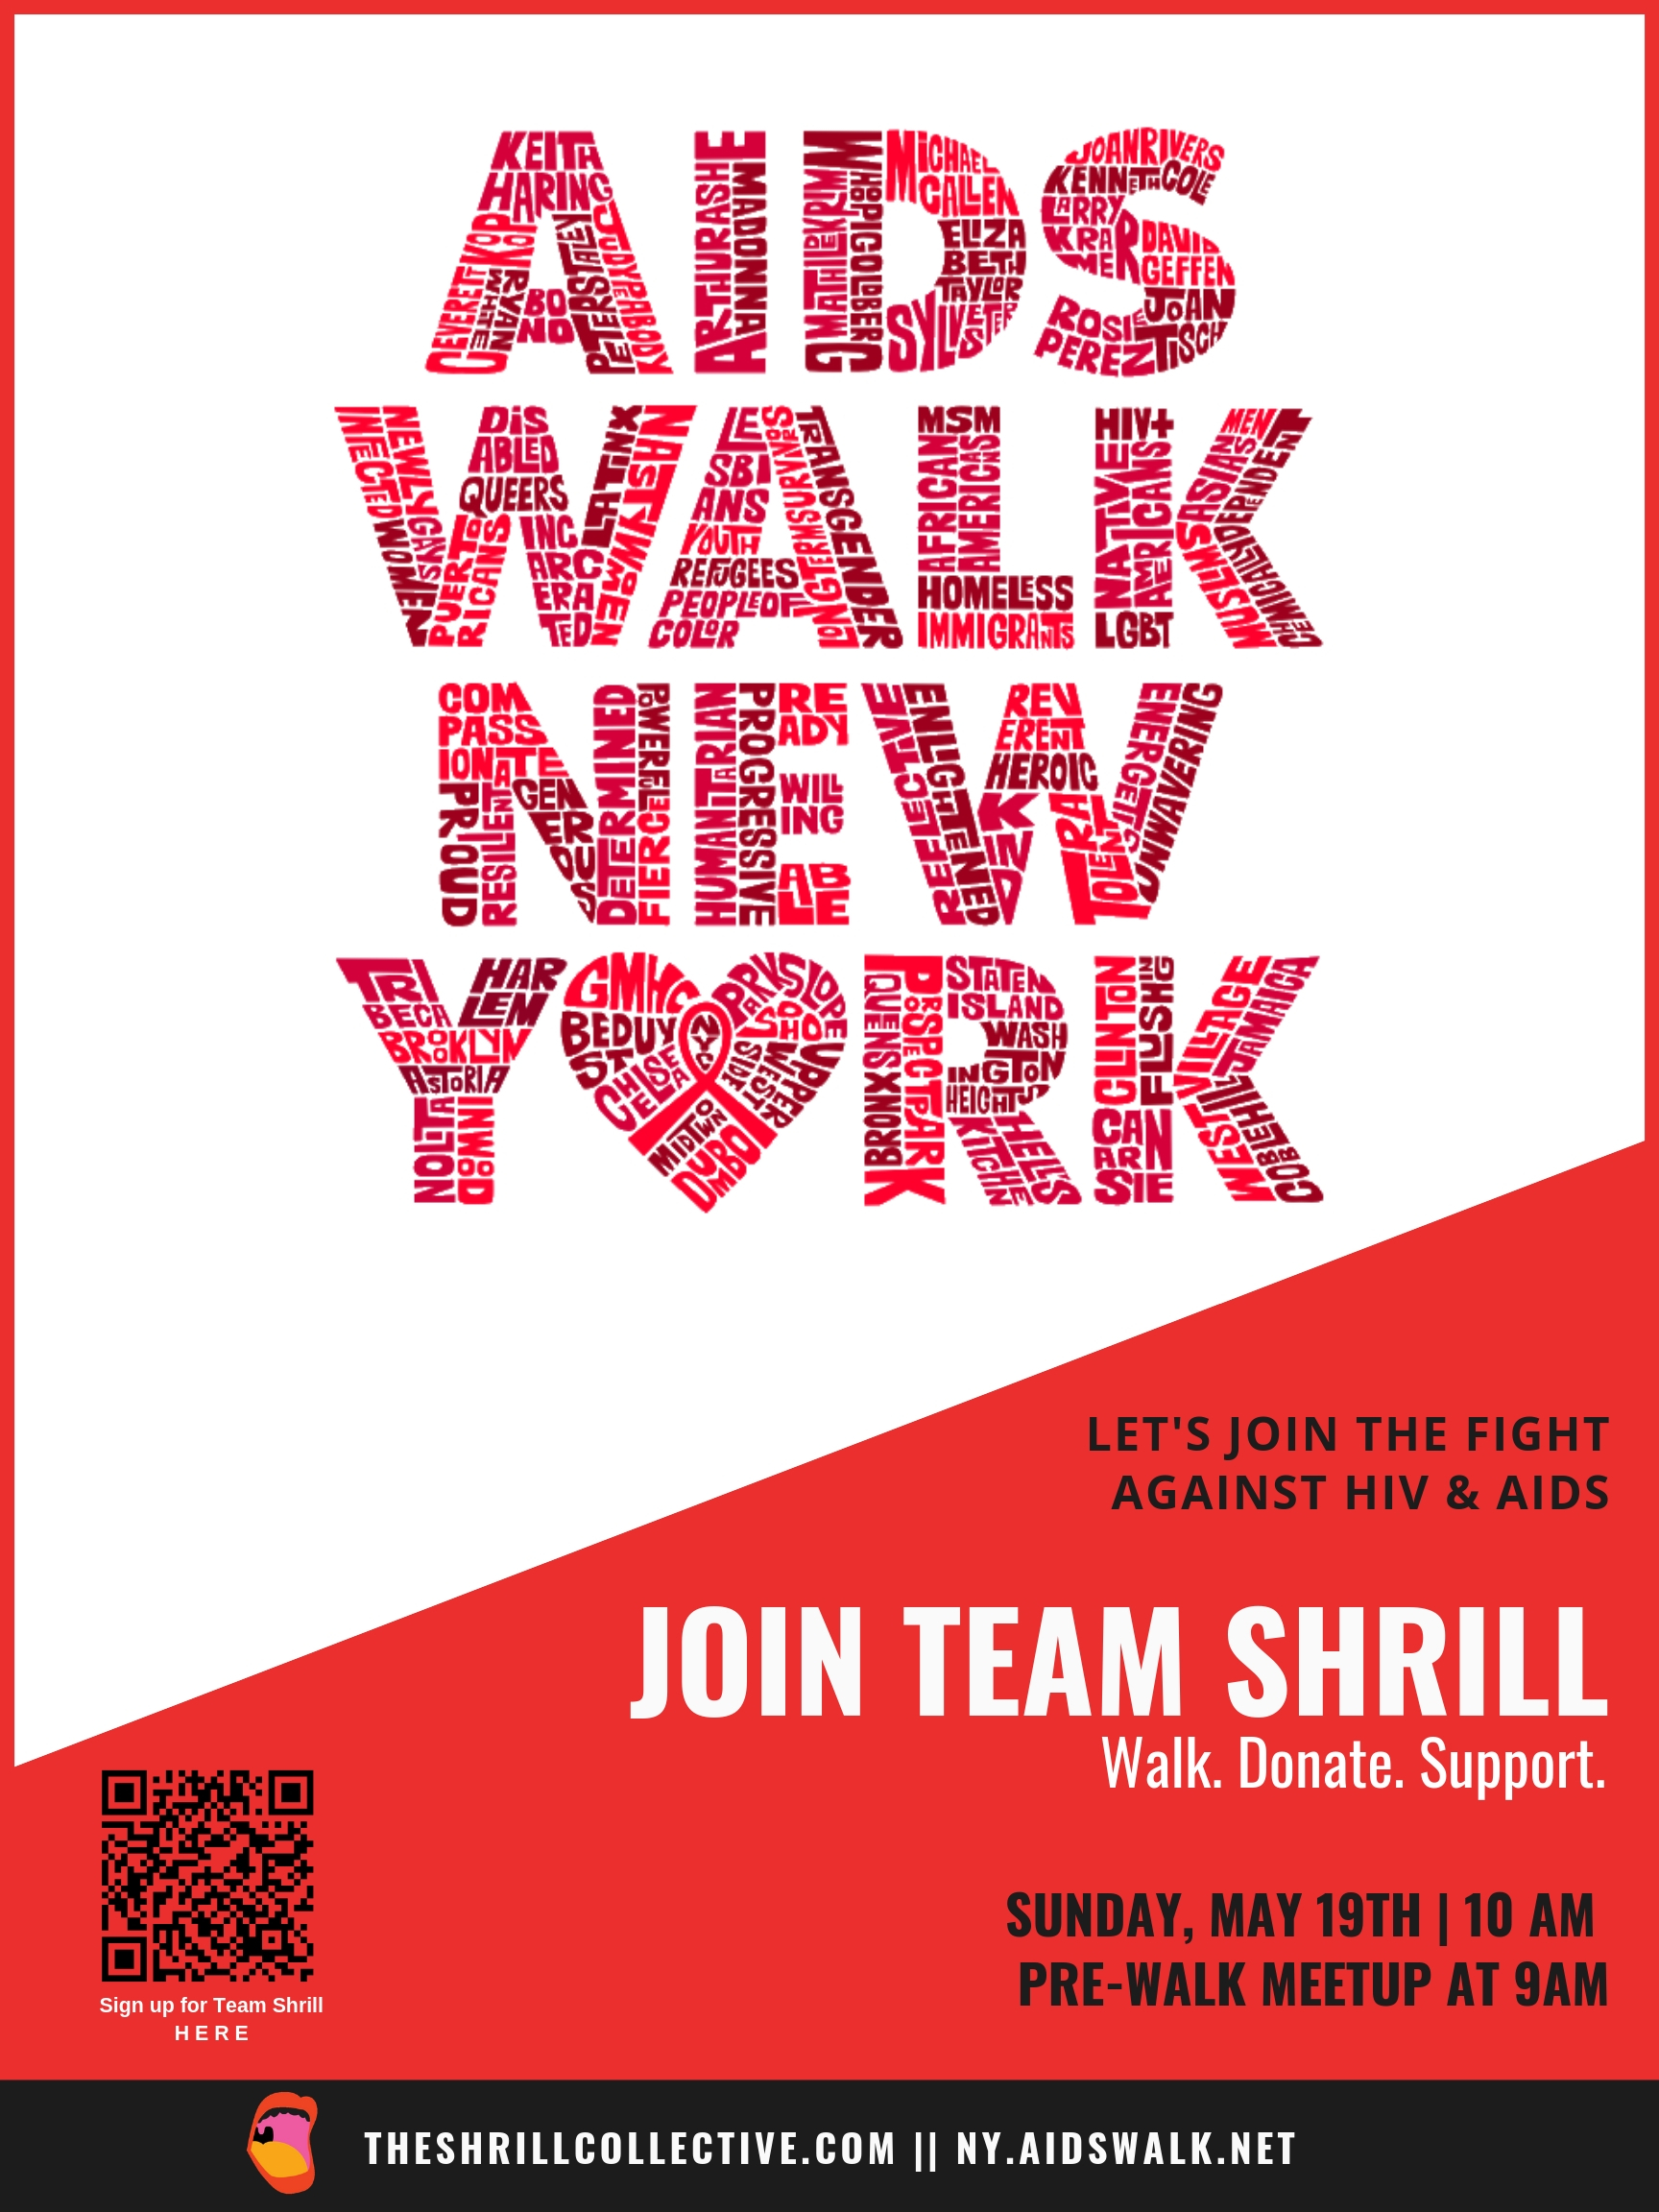 Team Shrill in AIDS Walk NY 2019 - SHRILLS AND SHRALLIES OF NEW YORK! Team Shrill will once again be walking in AIDS Walk NY on May 19th and we want YOU to join us!If you or your friends (all are welcome!) are able to join us for the walk, please register and join our official team H E R E.Unable to walk? You can still join Team Shrill and fundraise with us remotely! Our 2017 Team Shrill raised $550 to support the Gay Men's Health Crisis and numerous other tri-state area organizations. Let's see if we can match or exceed that goal this year!JOIN OR DONATE  THRU JUNE 7TH BY CLICKING HERE.Questions? Contact Ashley: ashley@theshrillcollective.com